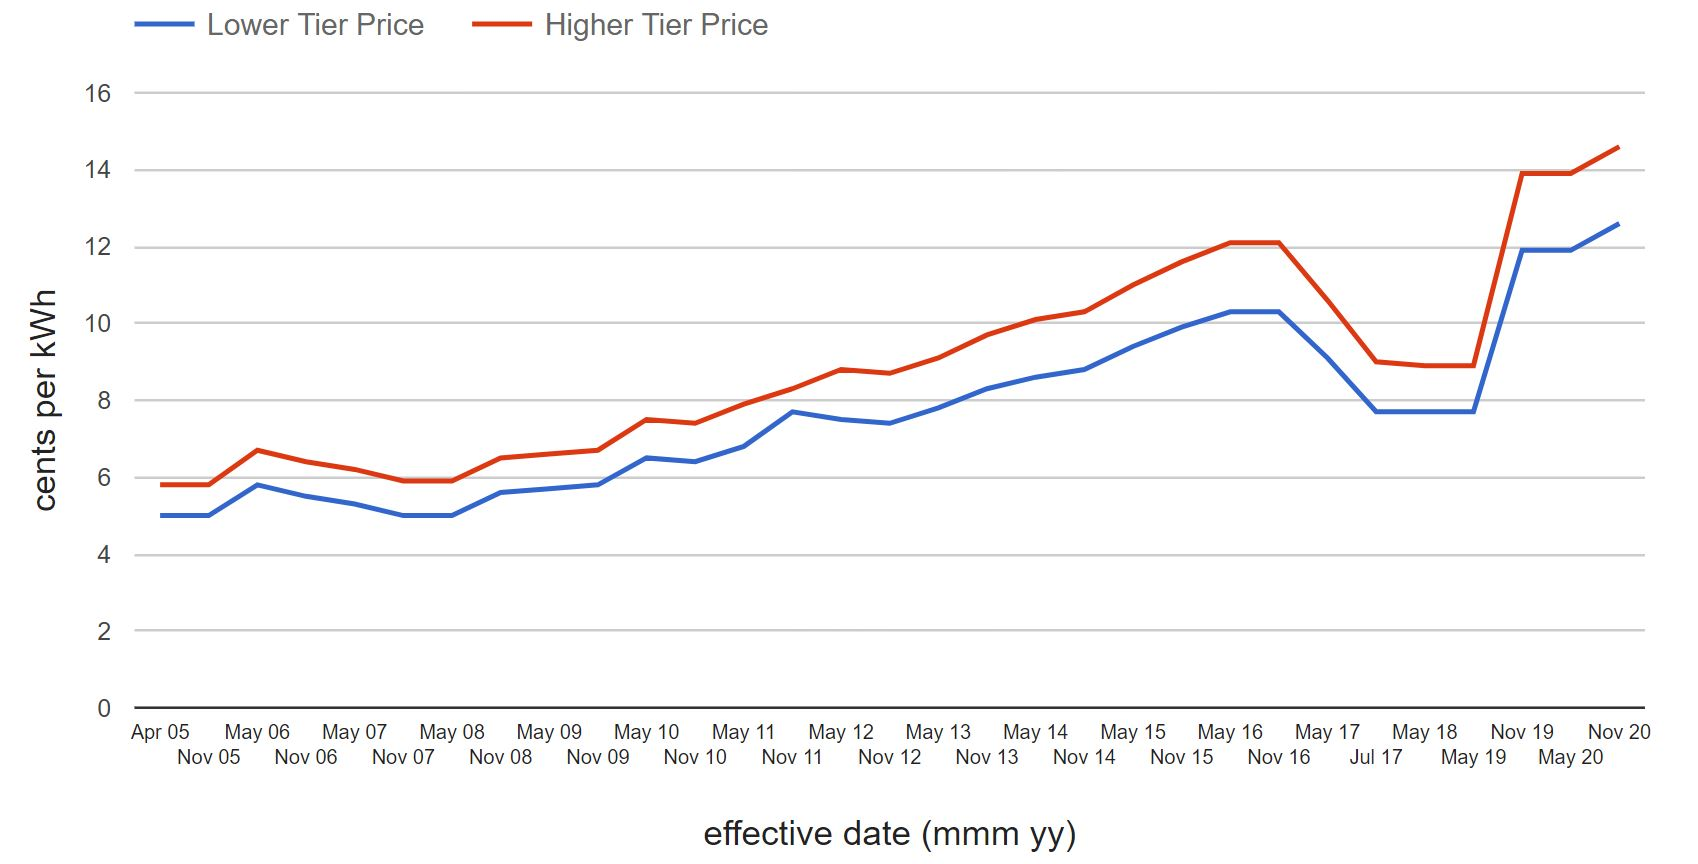 Chart - OED Tiered Electricity Prices (10+ years)